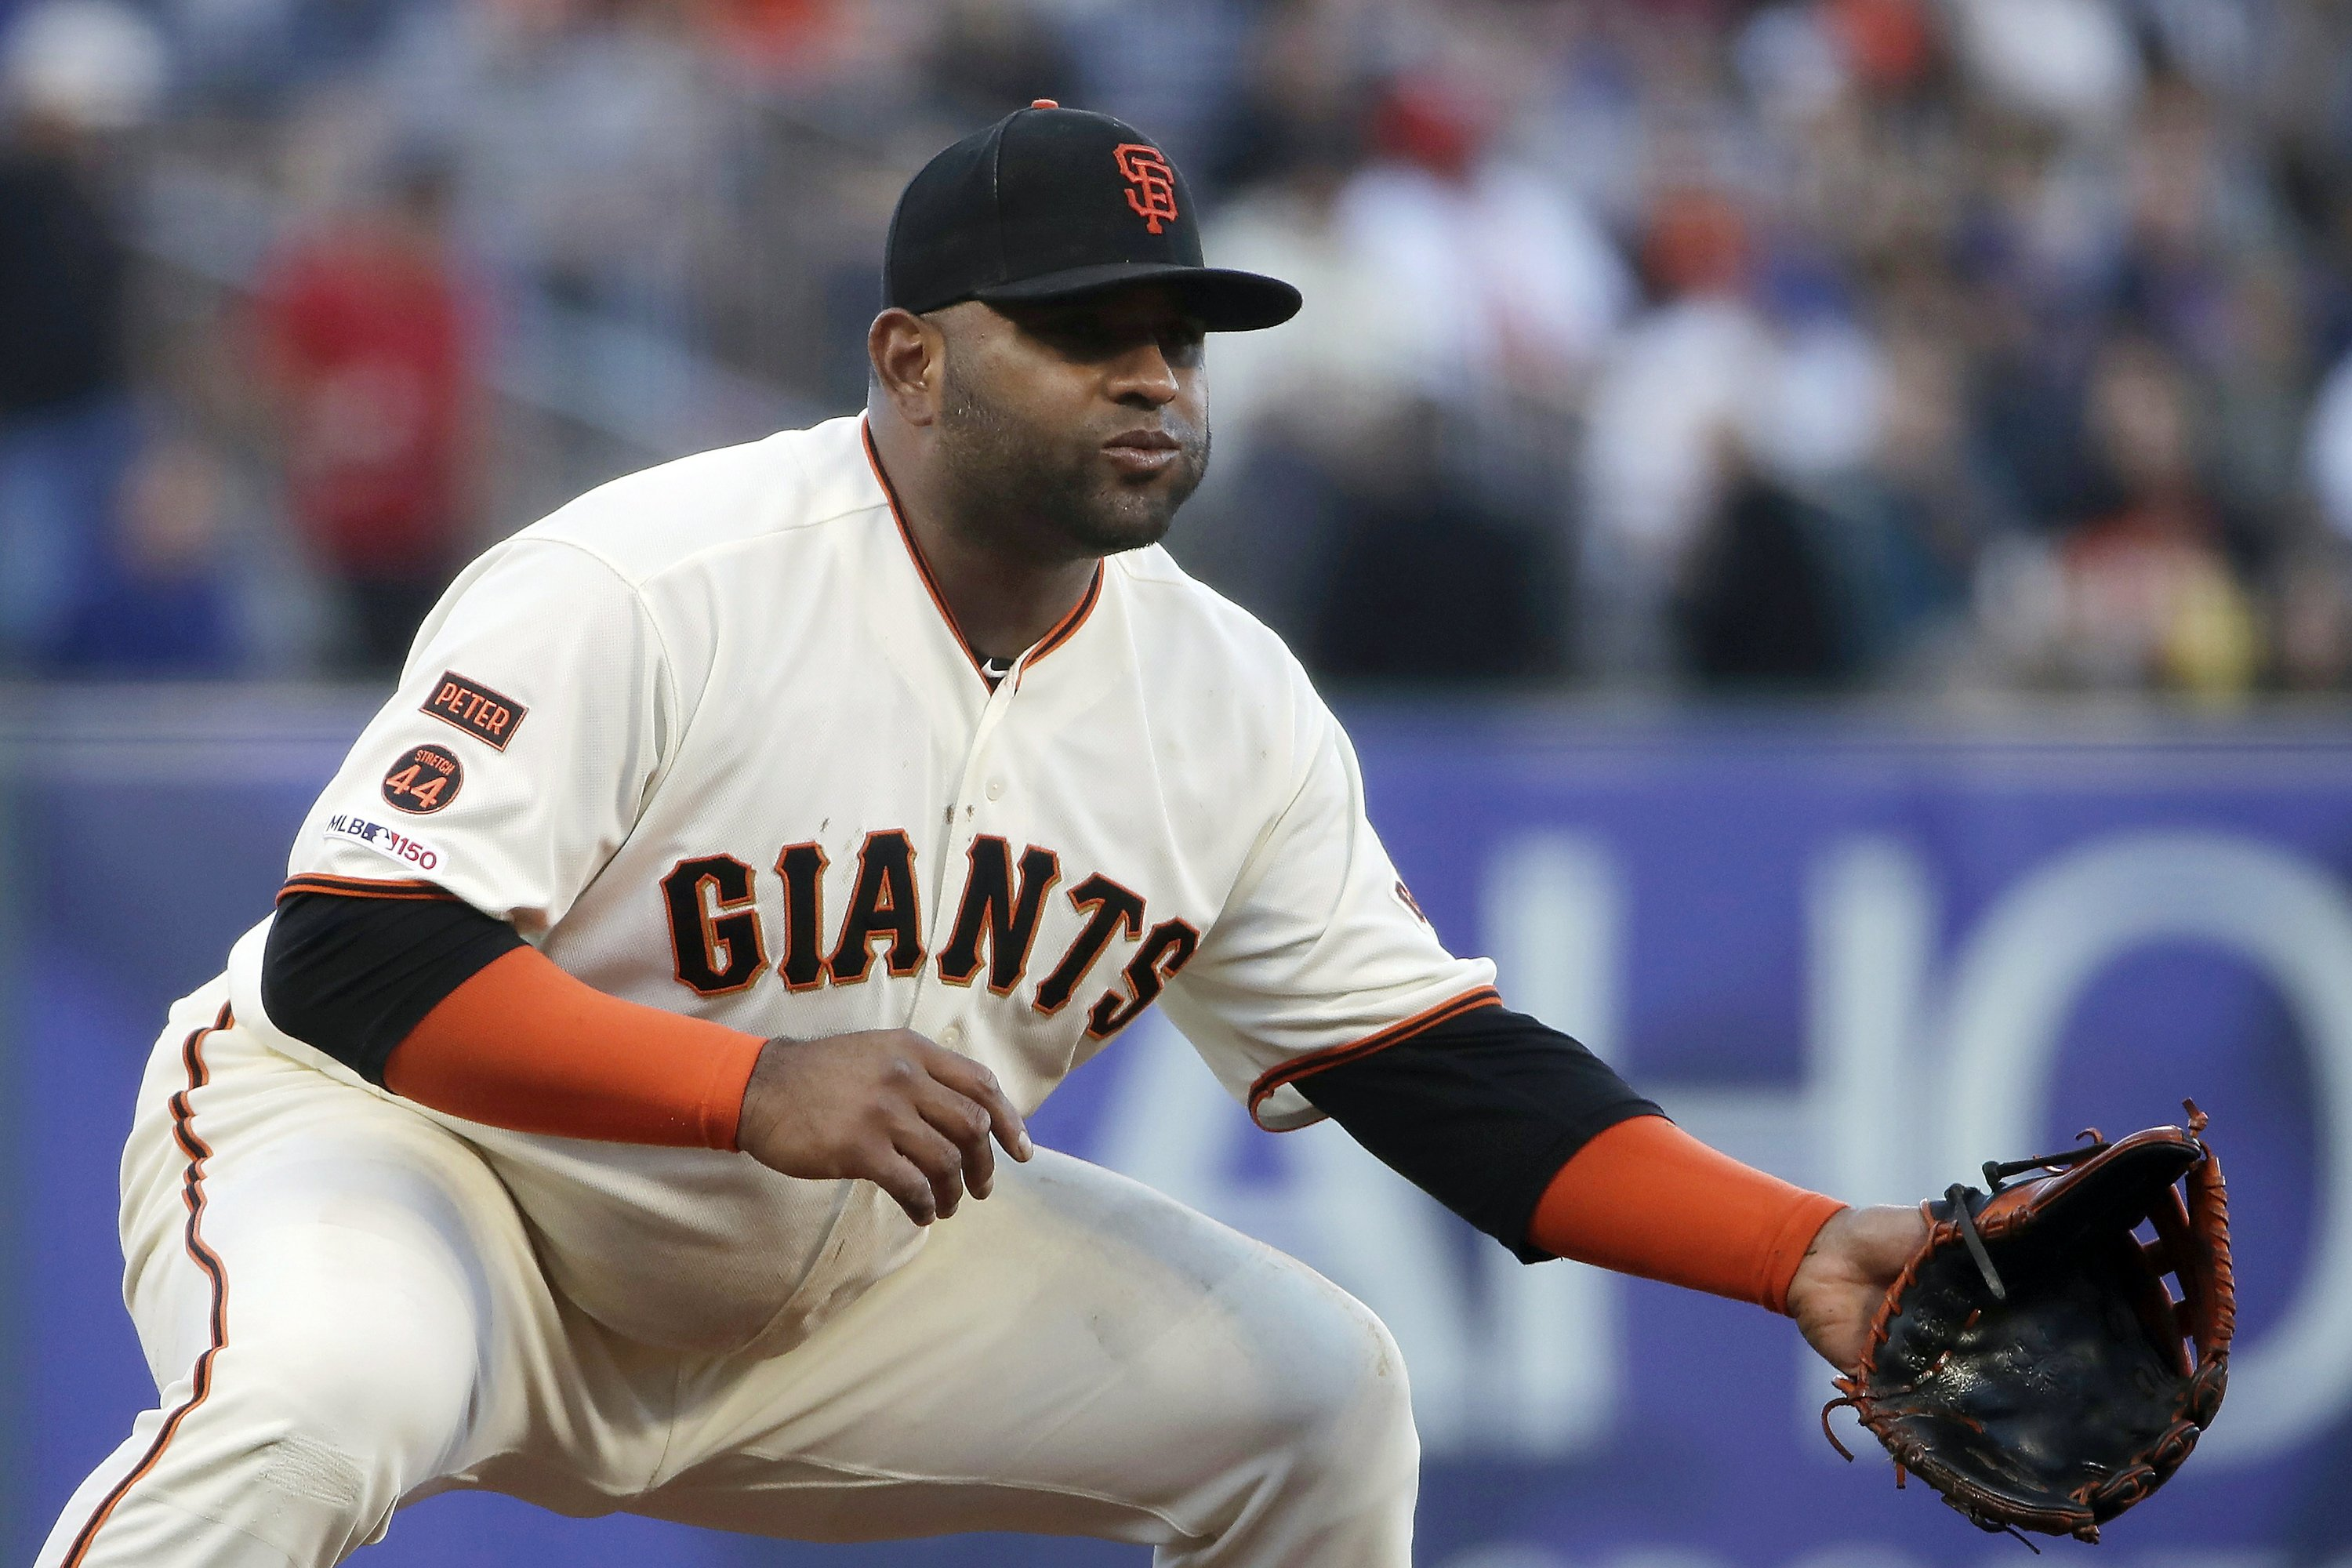 3B Pablo Sandoval returning to Giants on minor league deal